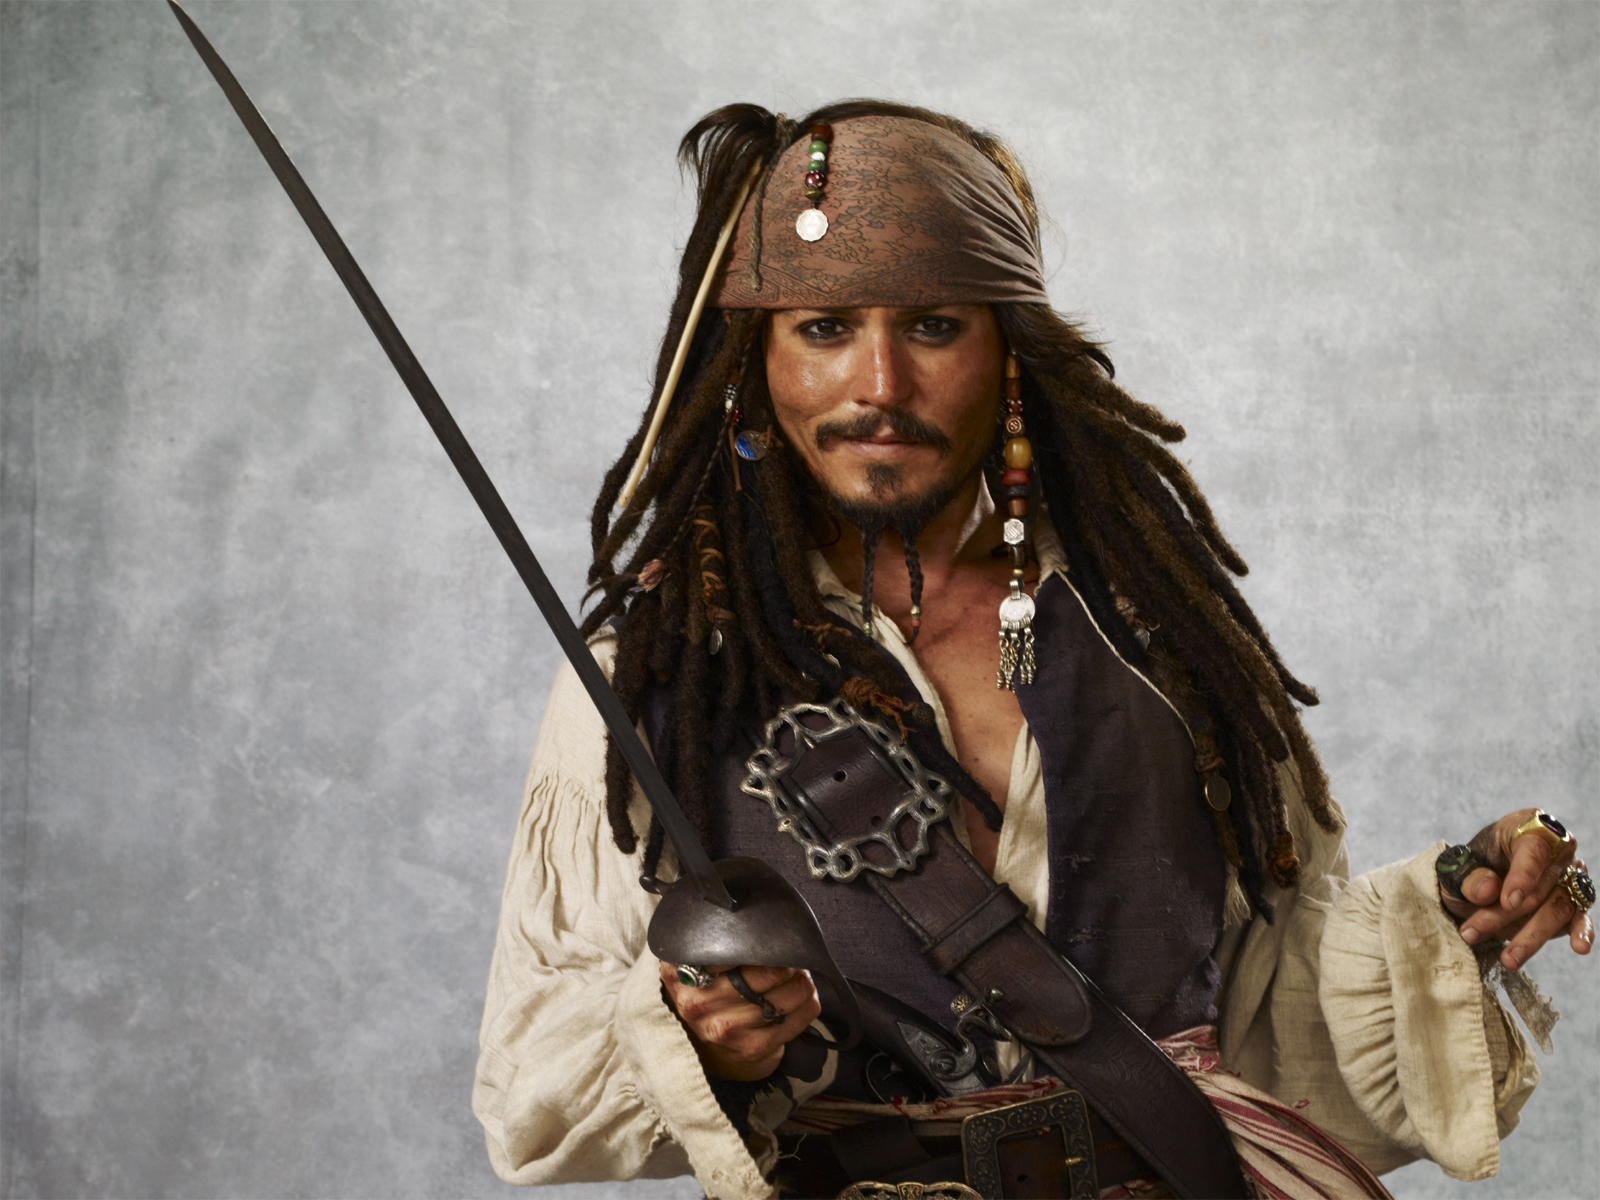 jack sparrow Directed by gore verbinski with johnny depp, geoffrey rush, orlando bloom, keira knightley blacksmith will turner teams up with eccentric pirate captain jack sparrow to save his love, the governor's daughter, from jack's former pirate allies, who are now undead.